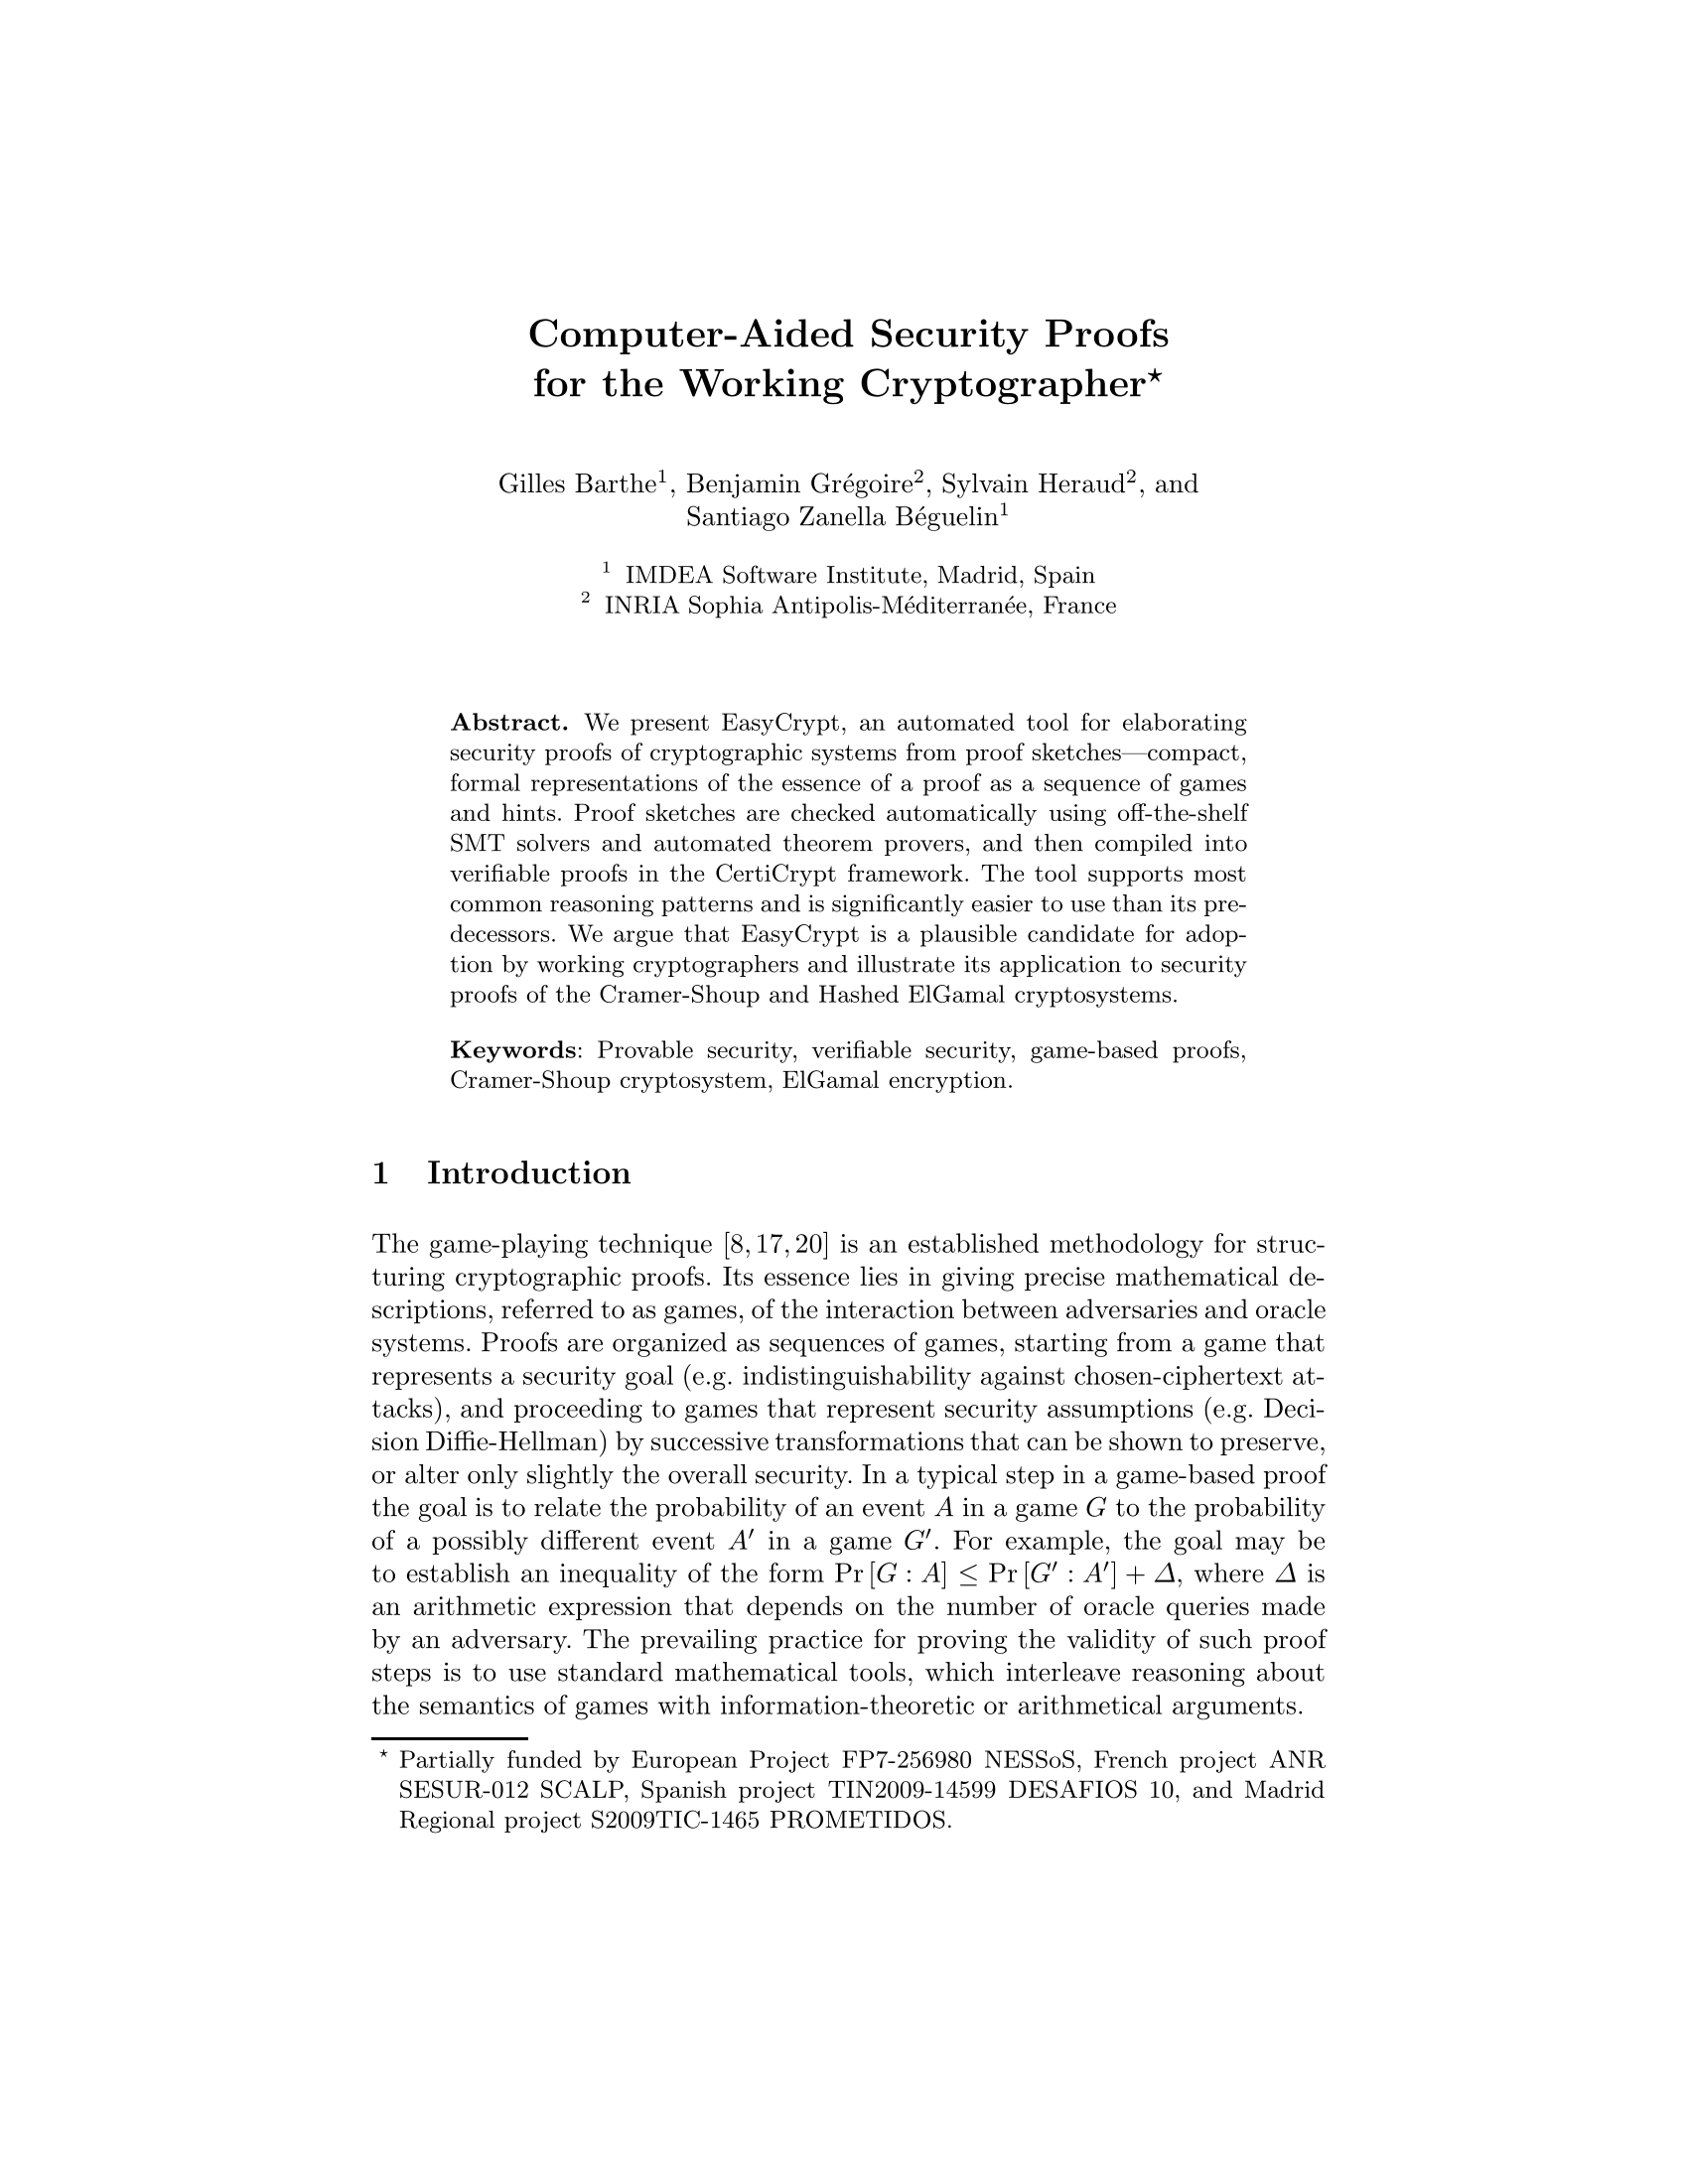 Computer-Aided Security Proofs for the Working Cryptographer.png